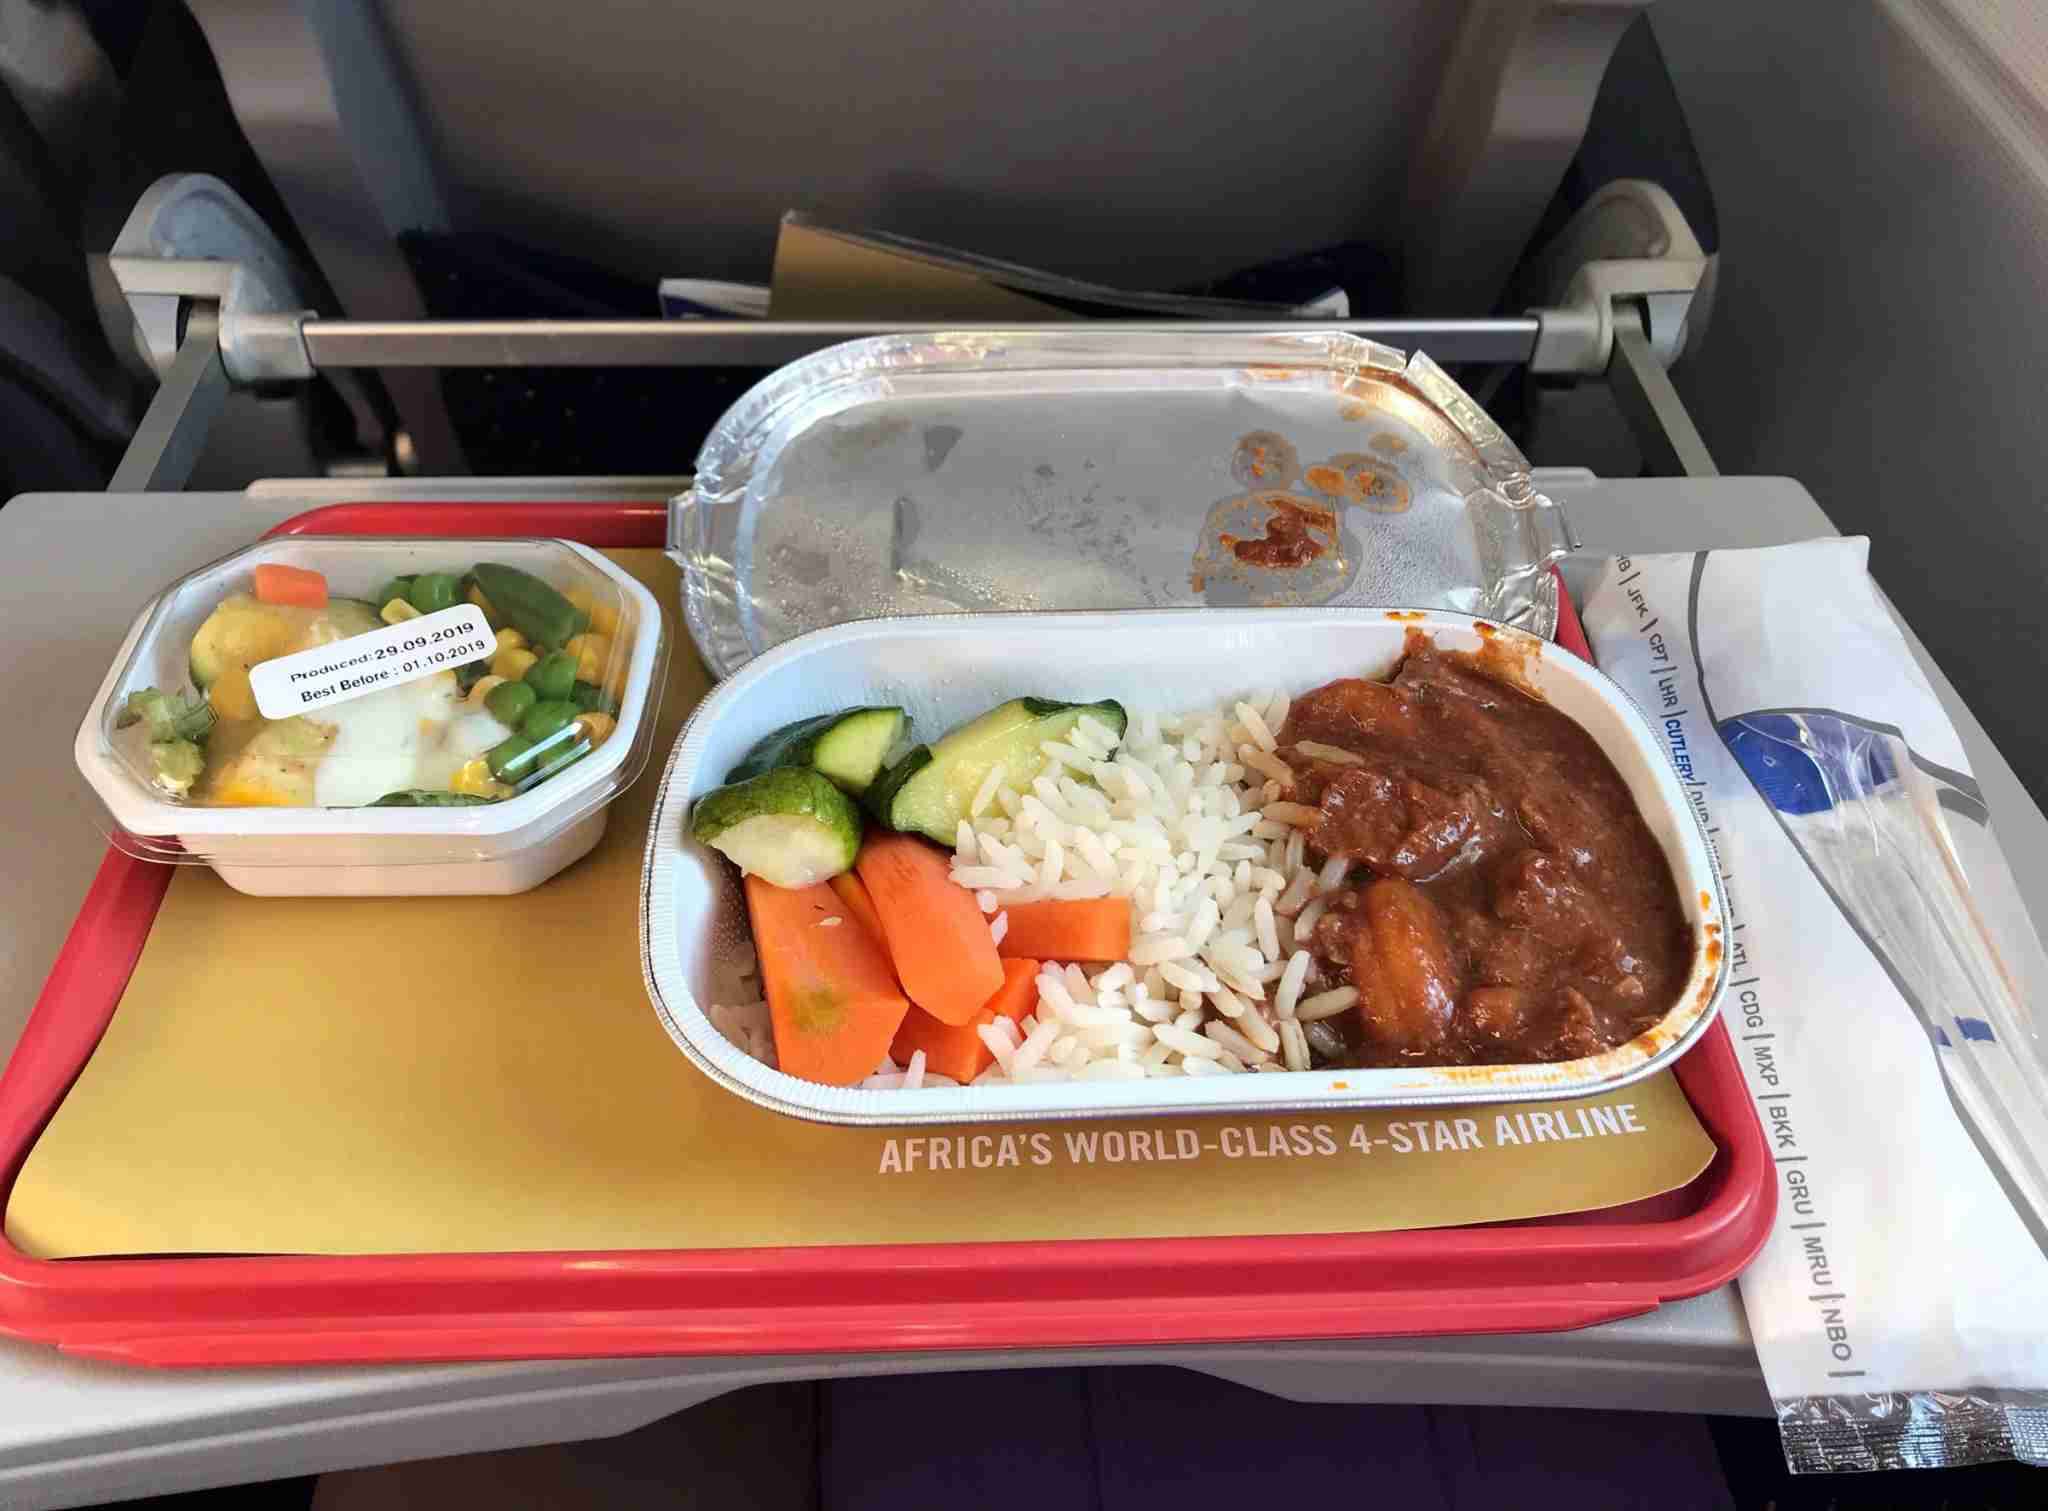 Economy meal on South African Airways (Photo by Patrick Smith)